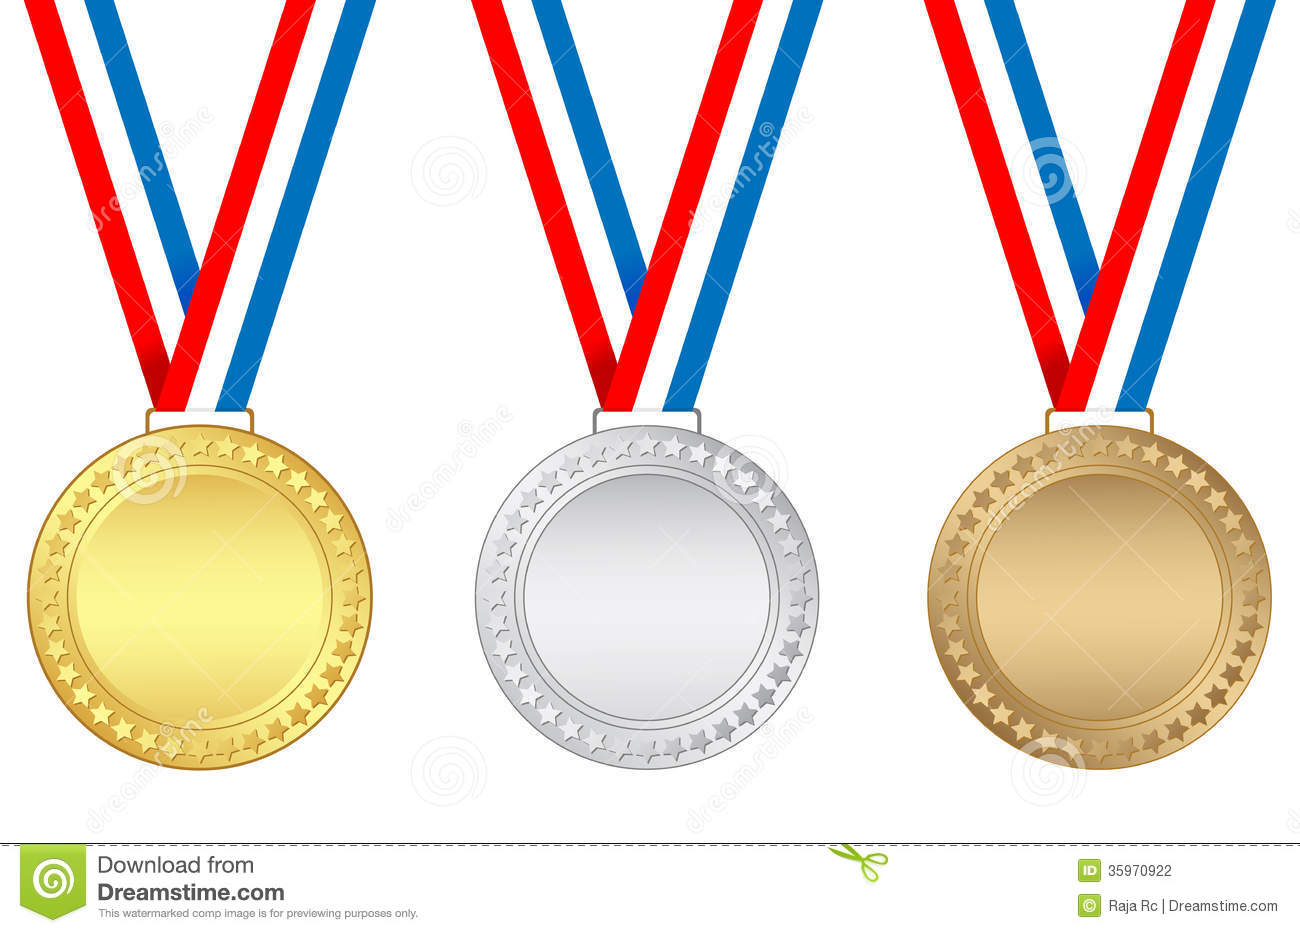 clip art medals free - photo #31